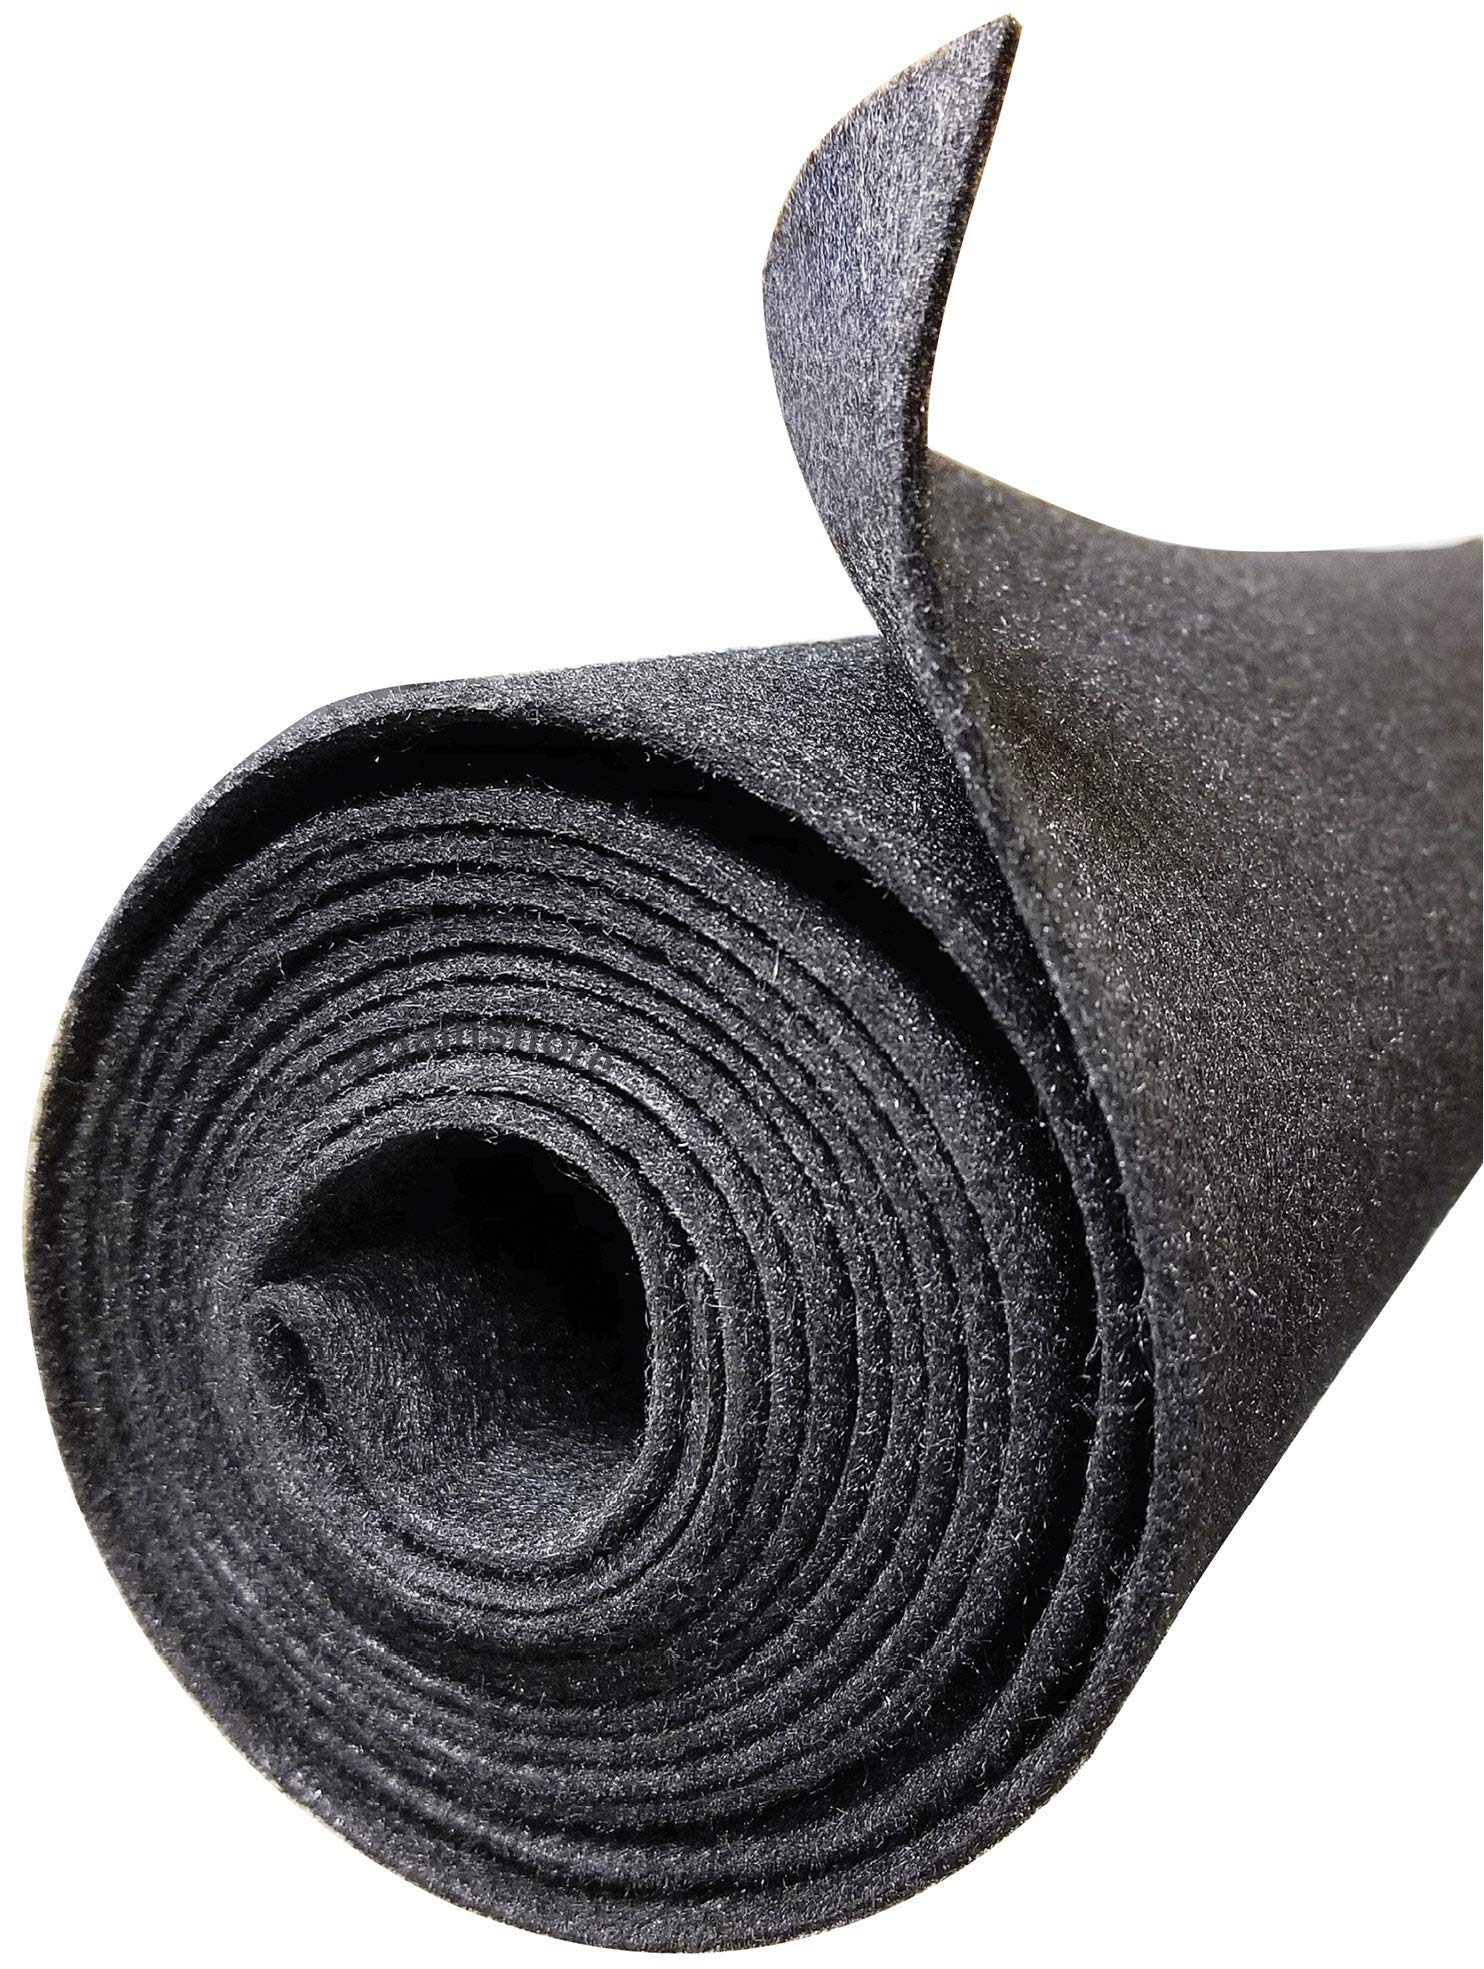 Polymat 3 FEET 4 FEET 3'X4' Charcoal Grey Non Woven Felt Fabric Roll for SubWoofer Speaker Box Enclosure Carpet and Trunk, Crafts, Multipurpose Liner, Latex Backed Felt Carpet